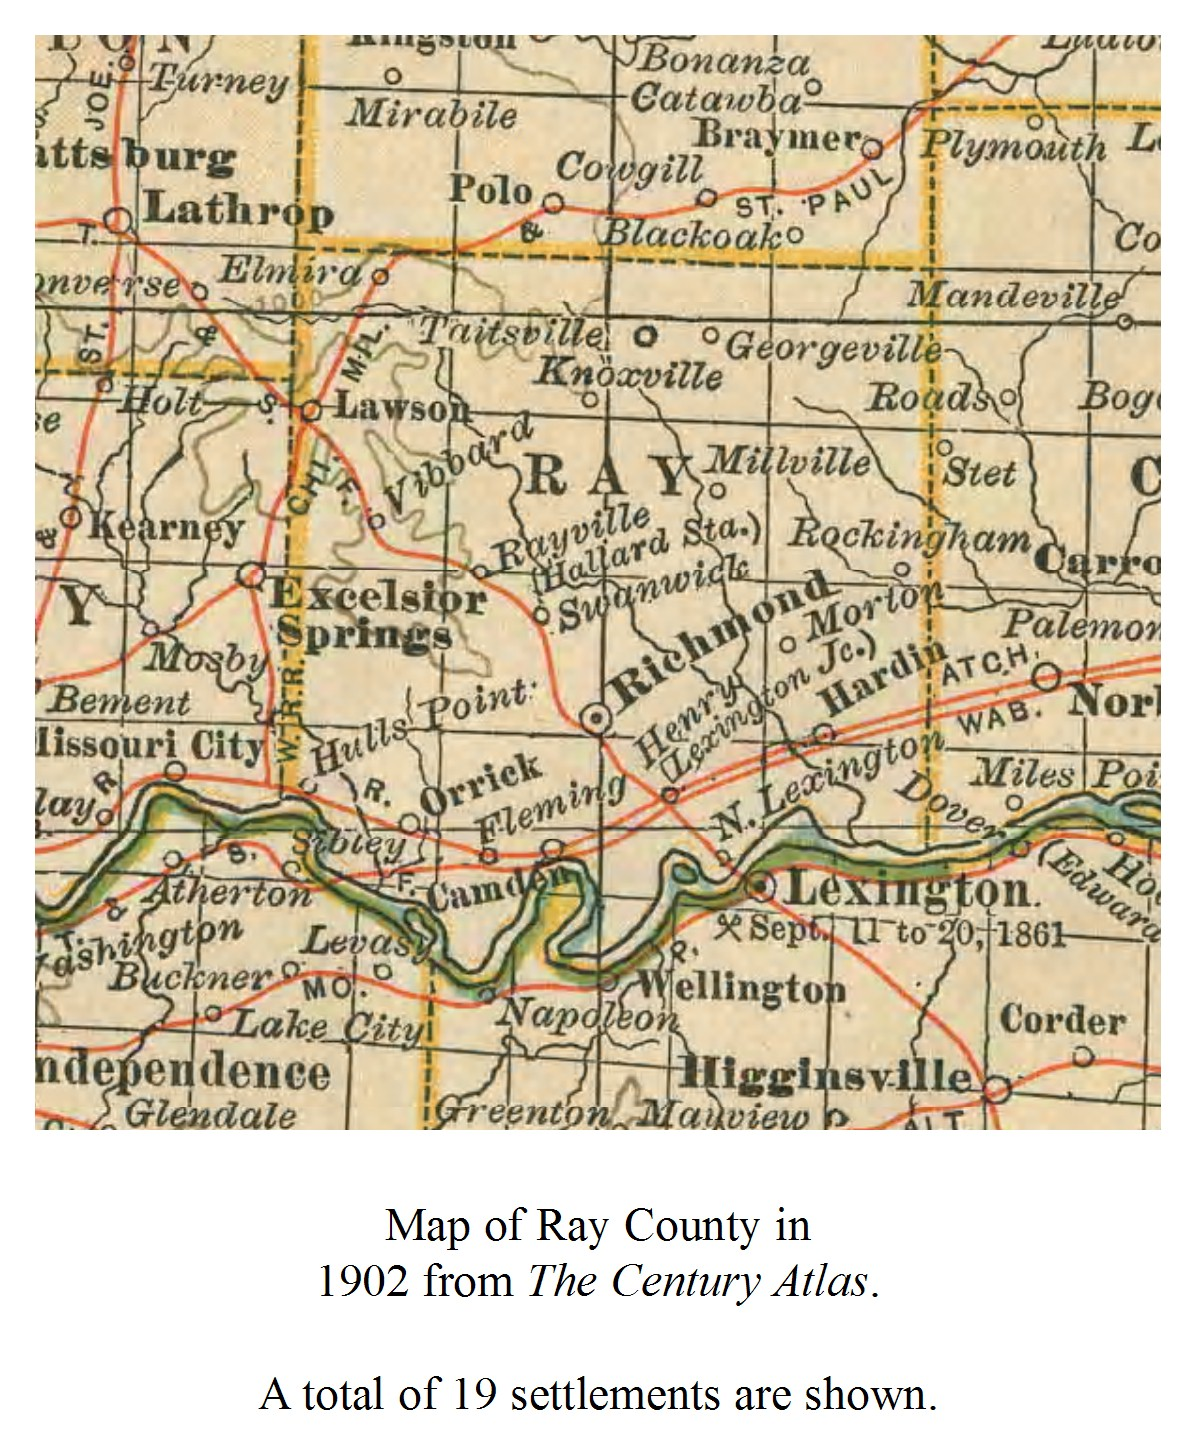 ray county Landwatch has 45 land for sale listings in ray county, mo view listing photos, contact sellers, and use filters to find land for sale | landwatch.